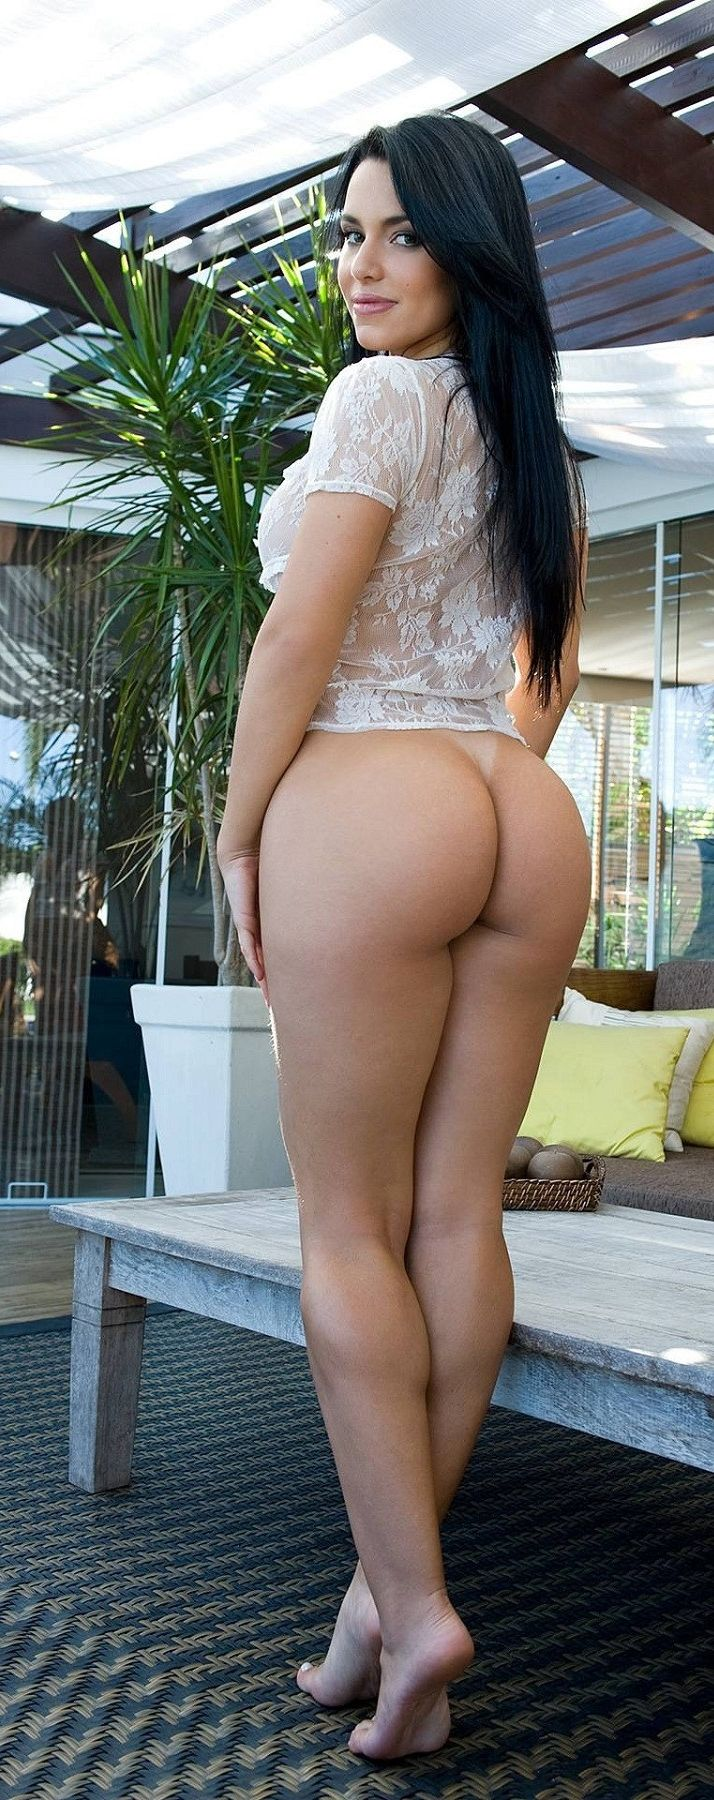 Ass beautiful butt